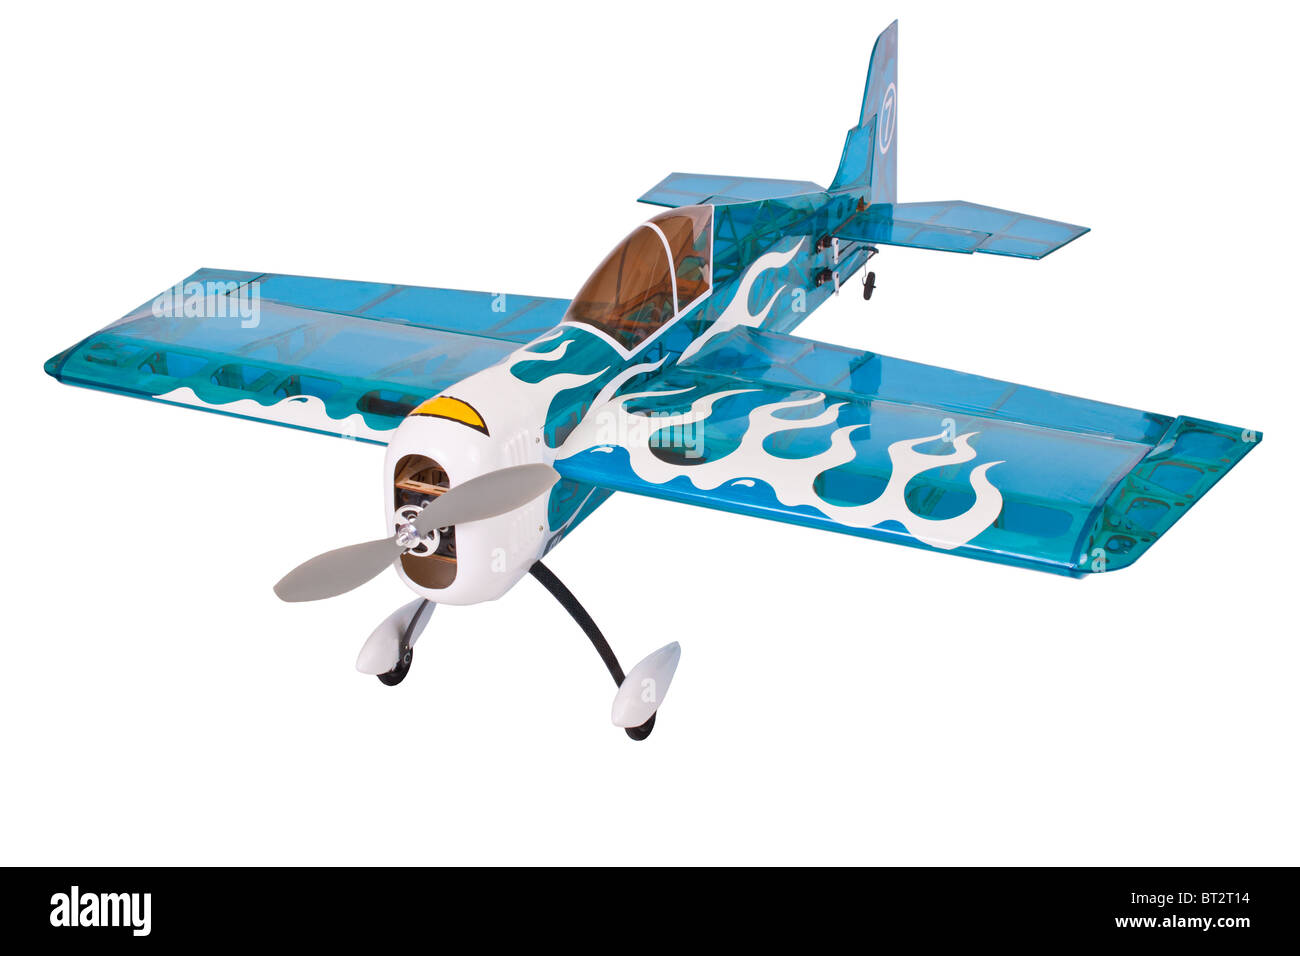 blue colored aerobatic rc model aircraft isolated on white background for your text - Stock Image